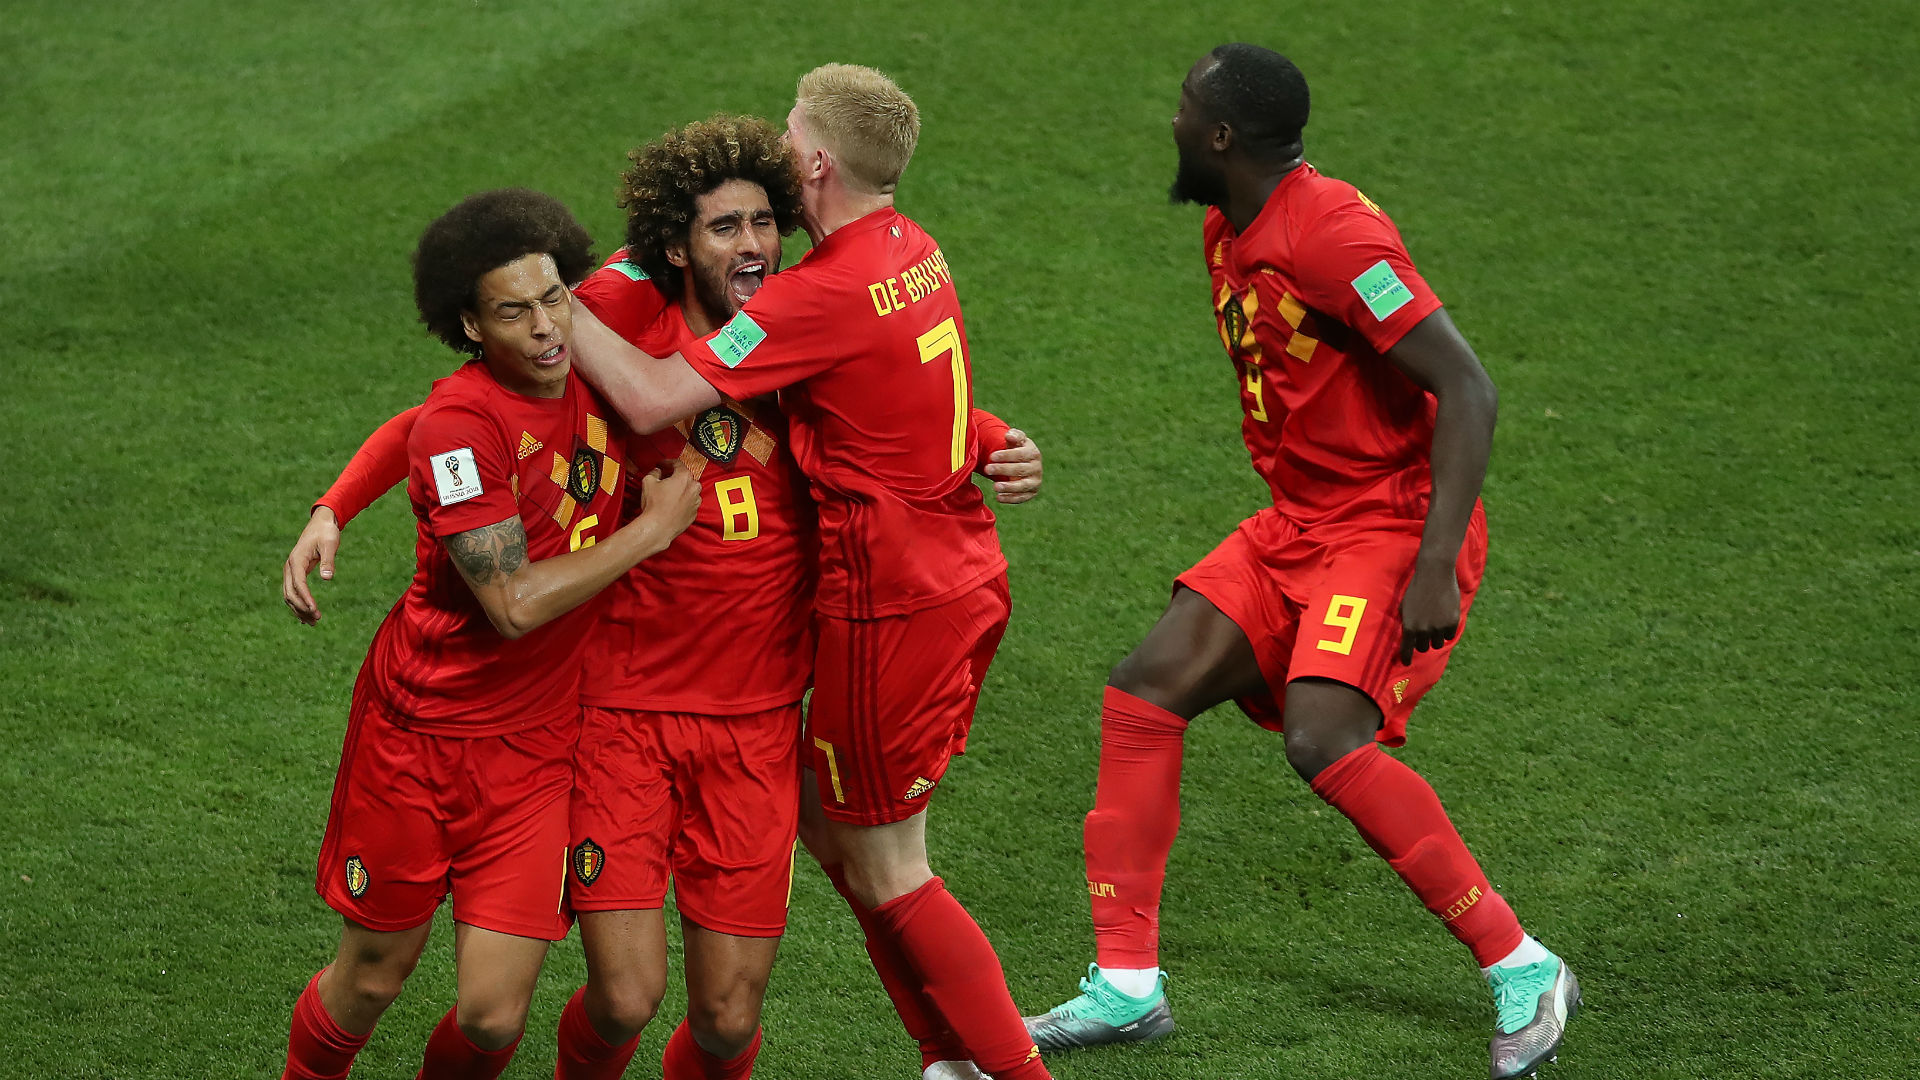 Belgium's 'Golden Generation' Finally Make Their Mark